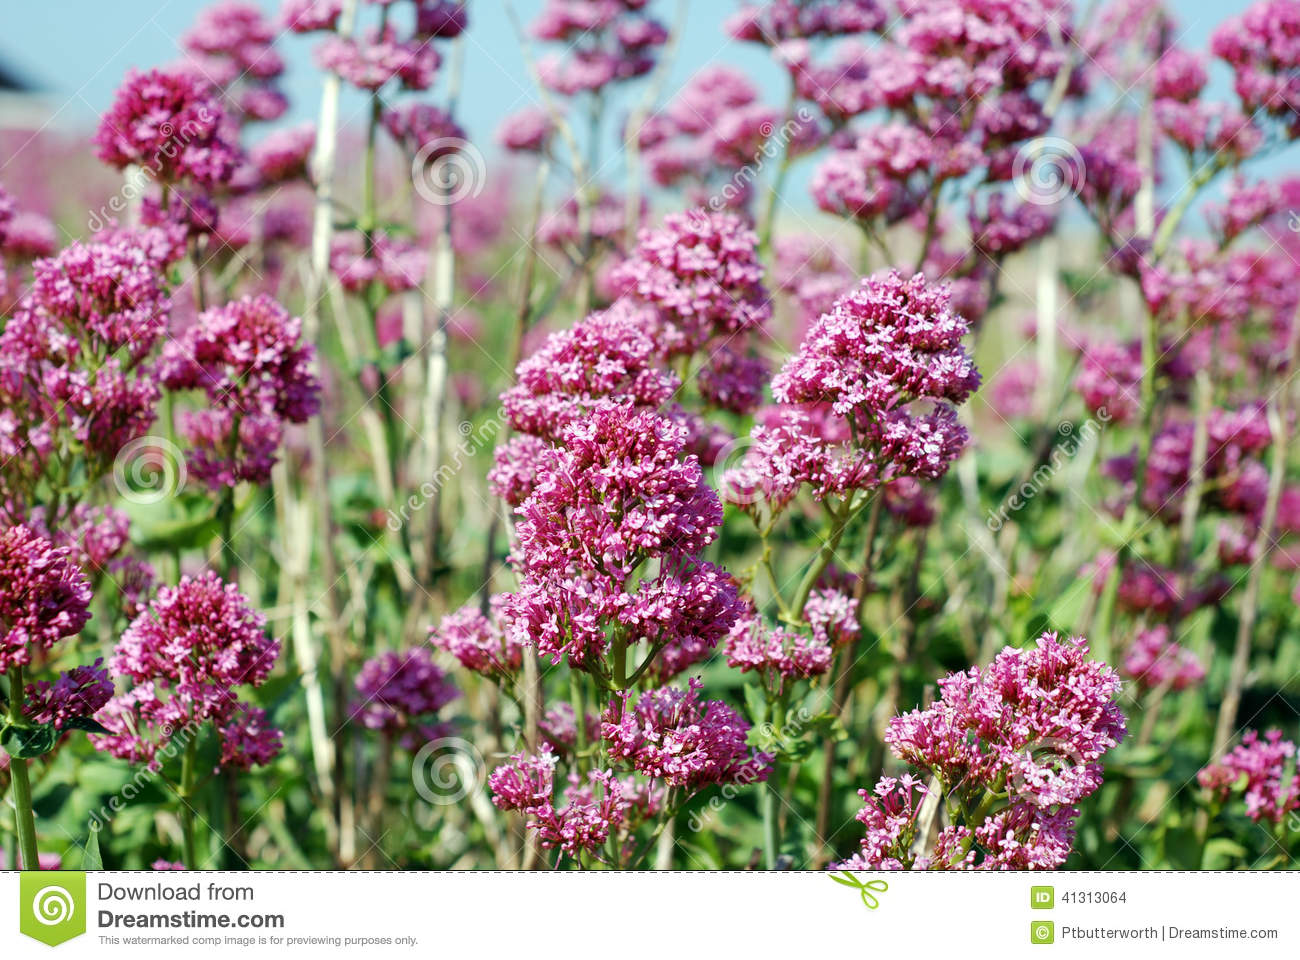 Wild pink flowers stock photo image of environment flowers 41313064 download wild pink flowers stock photo image of environment flowers 41313064 mightylinksfo